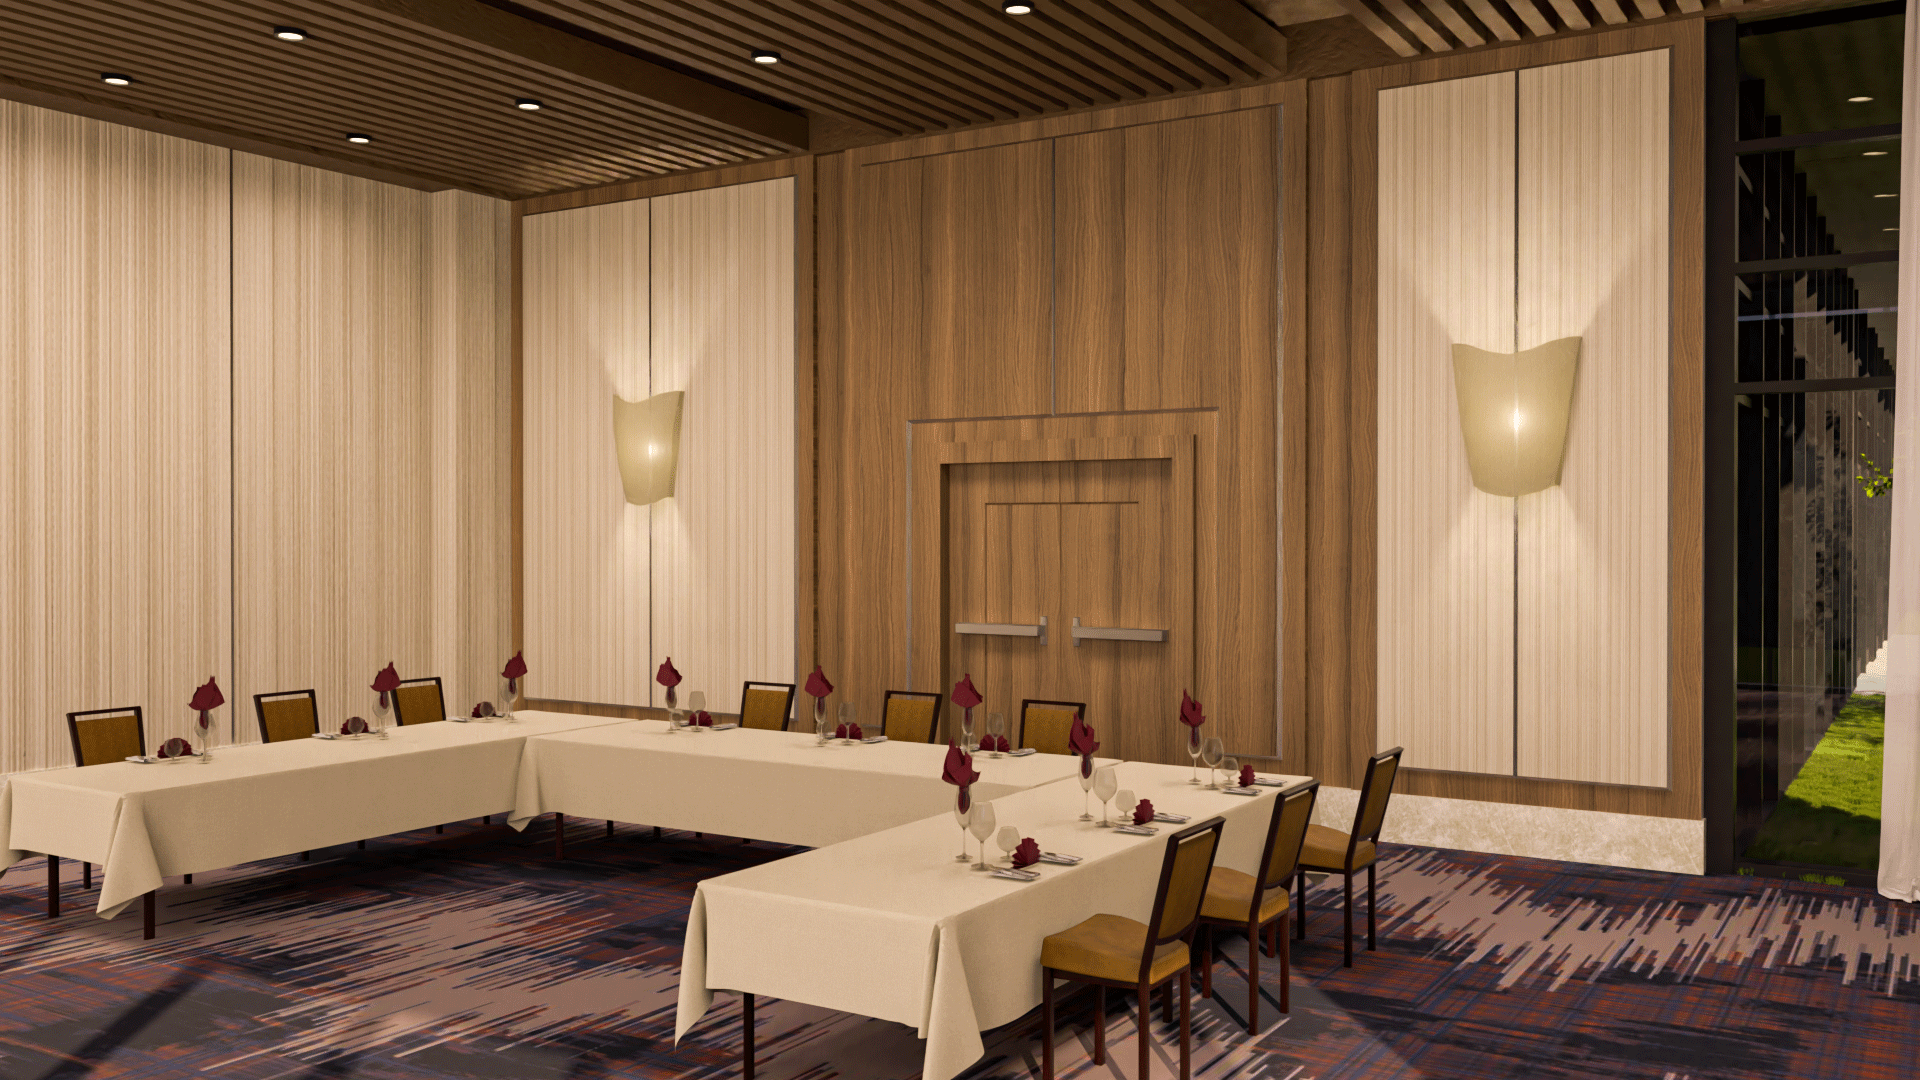 Wild Horse Pass expansion - Conference Center rendering1.png